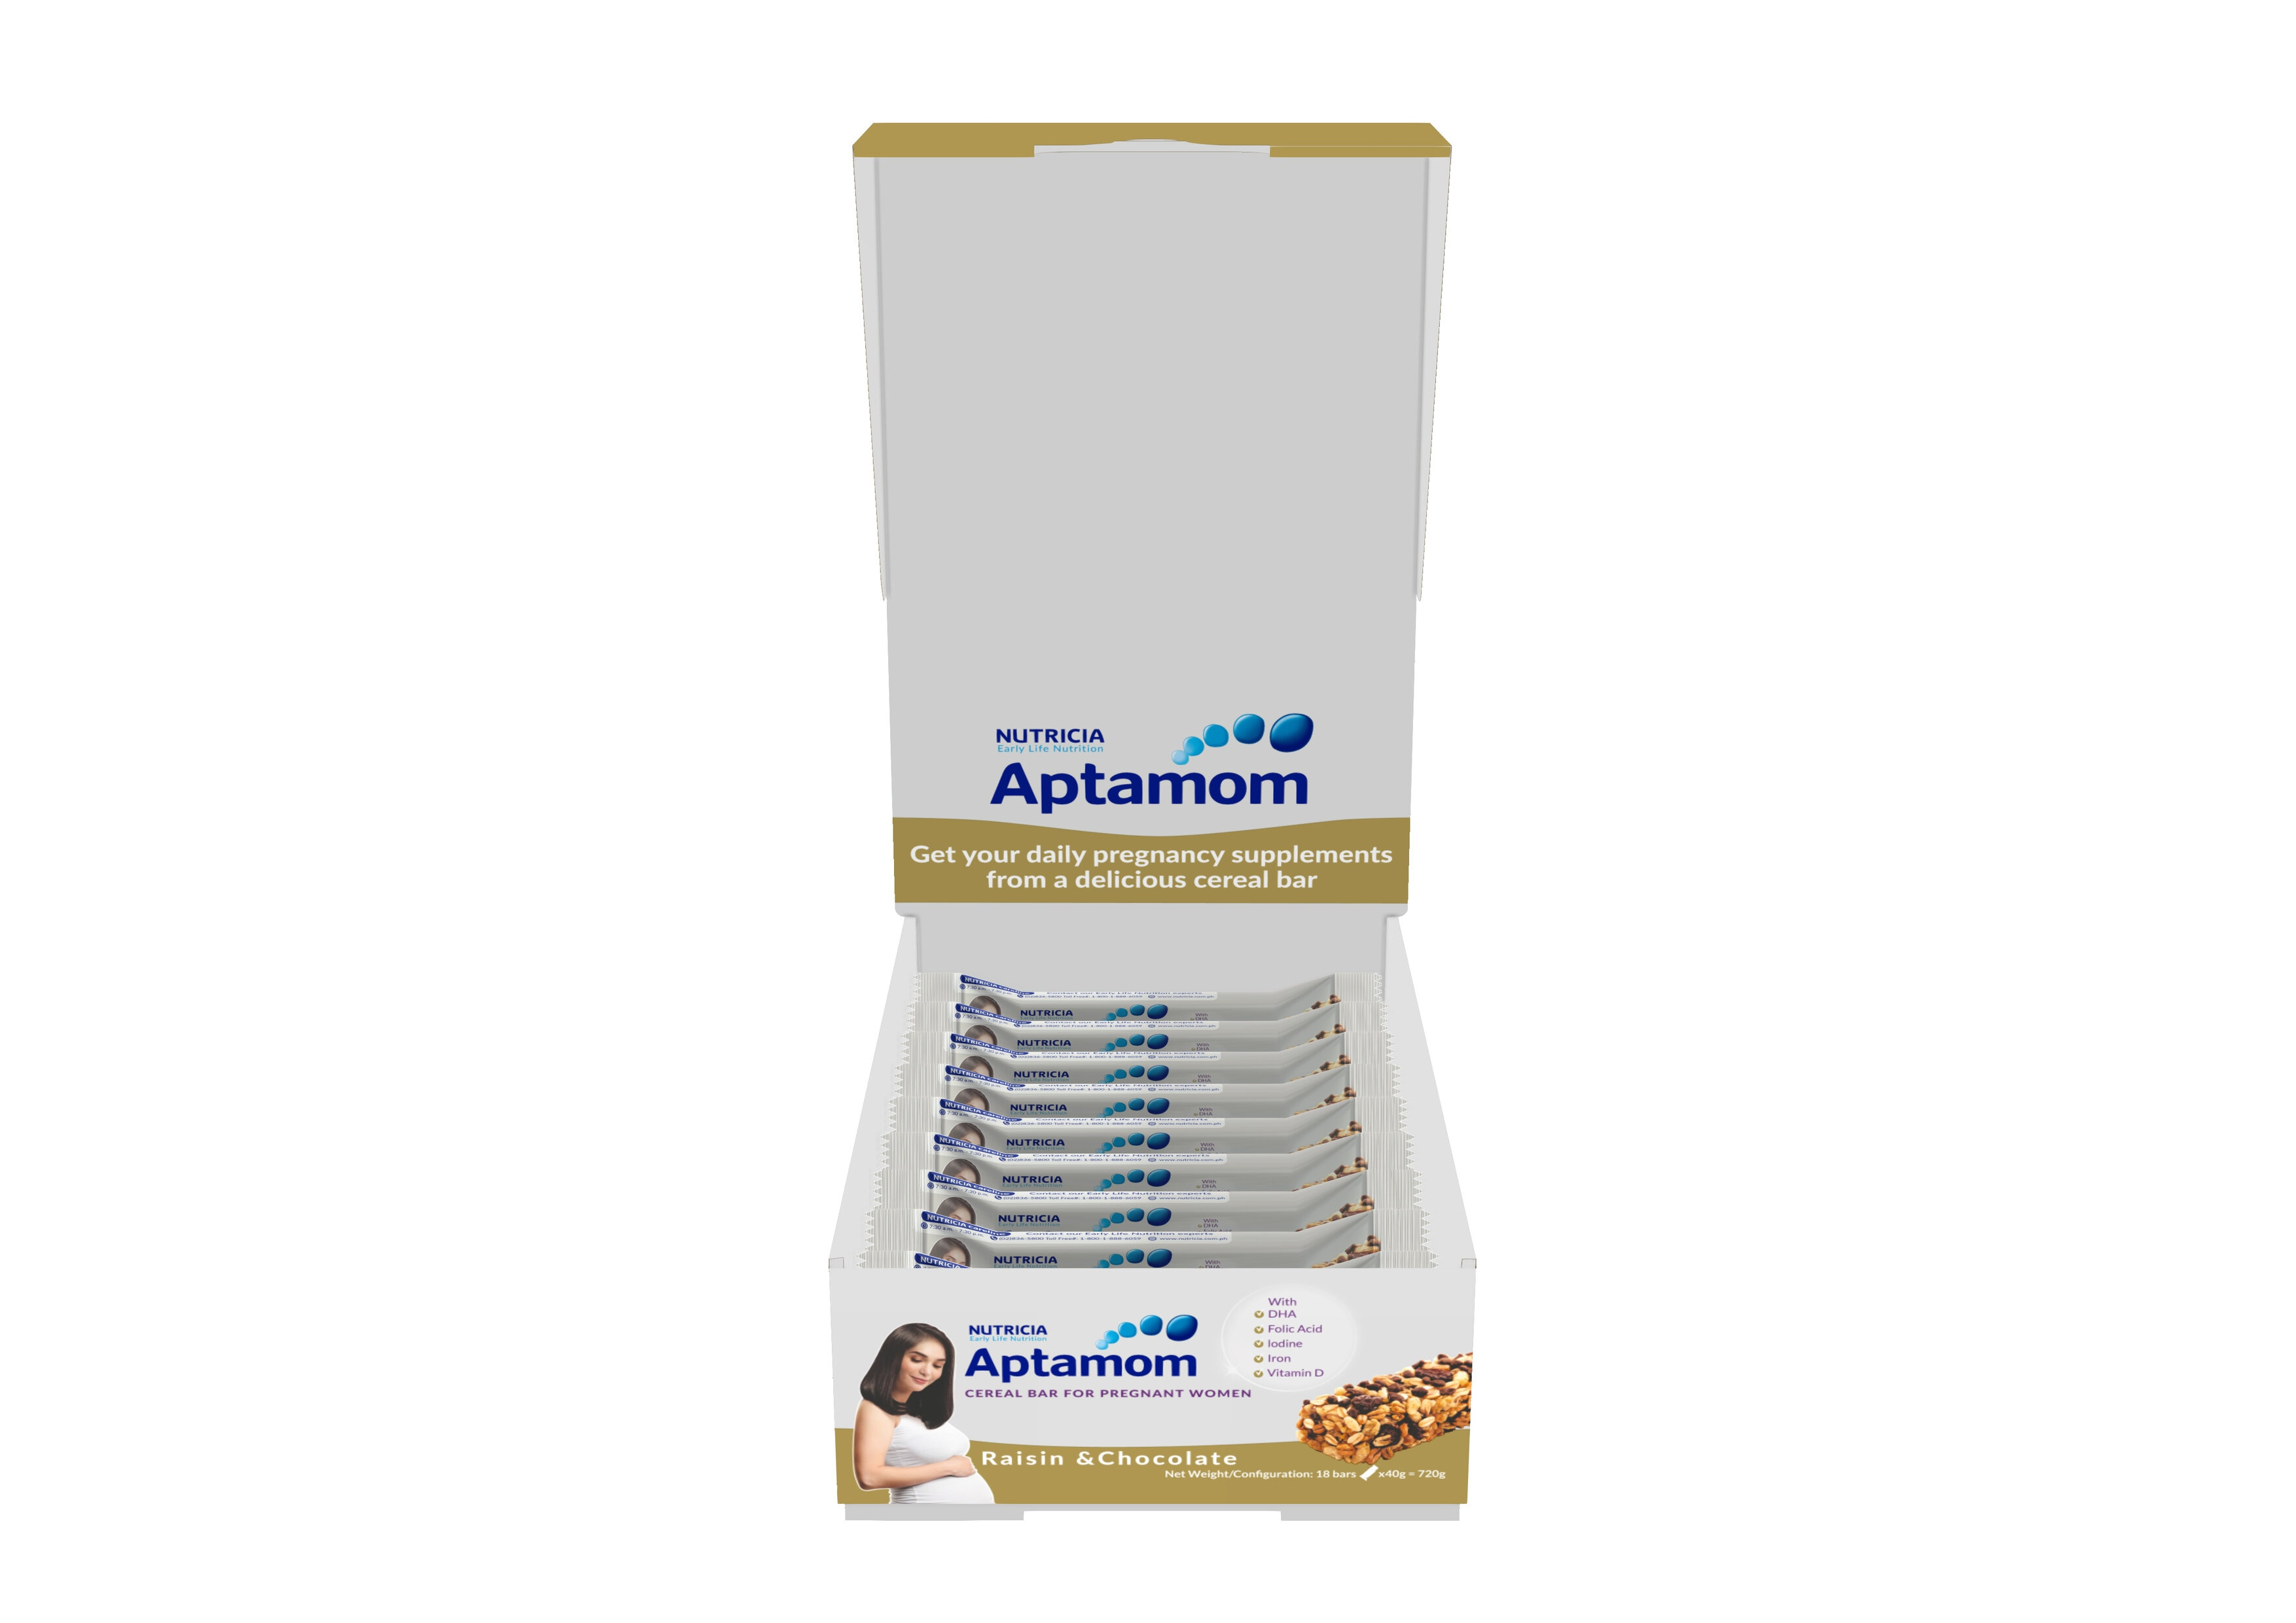 APTAMOMCereal Bar - Raisin and Chocolate with DHA 40g 1s,Diet and Slimming